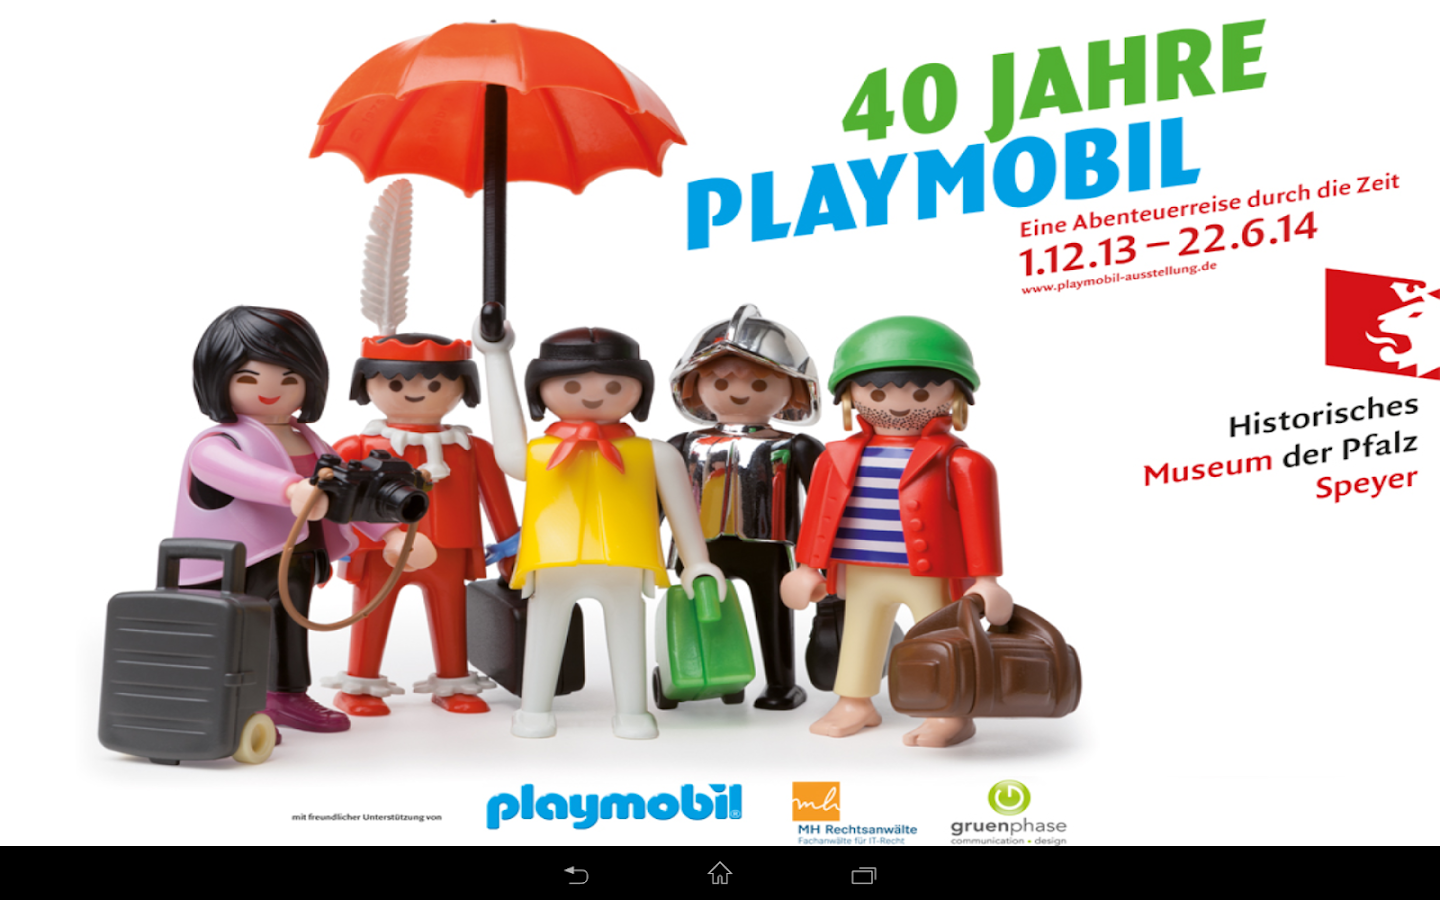 PLAYMOBIL 40 Jahre - screenshot